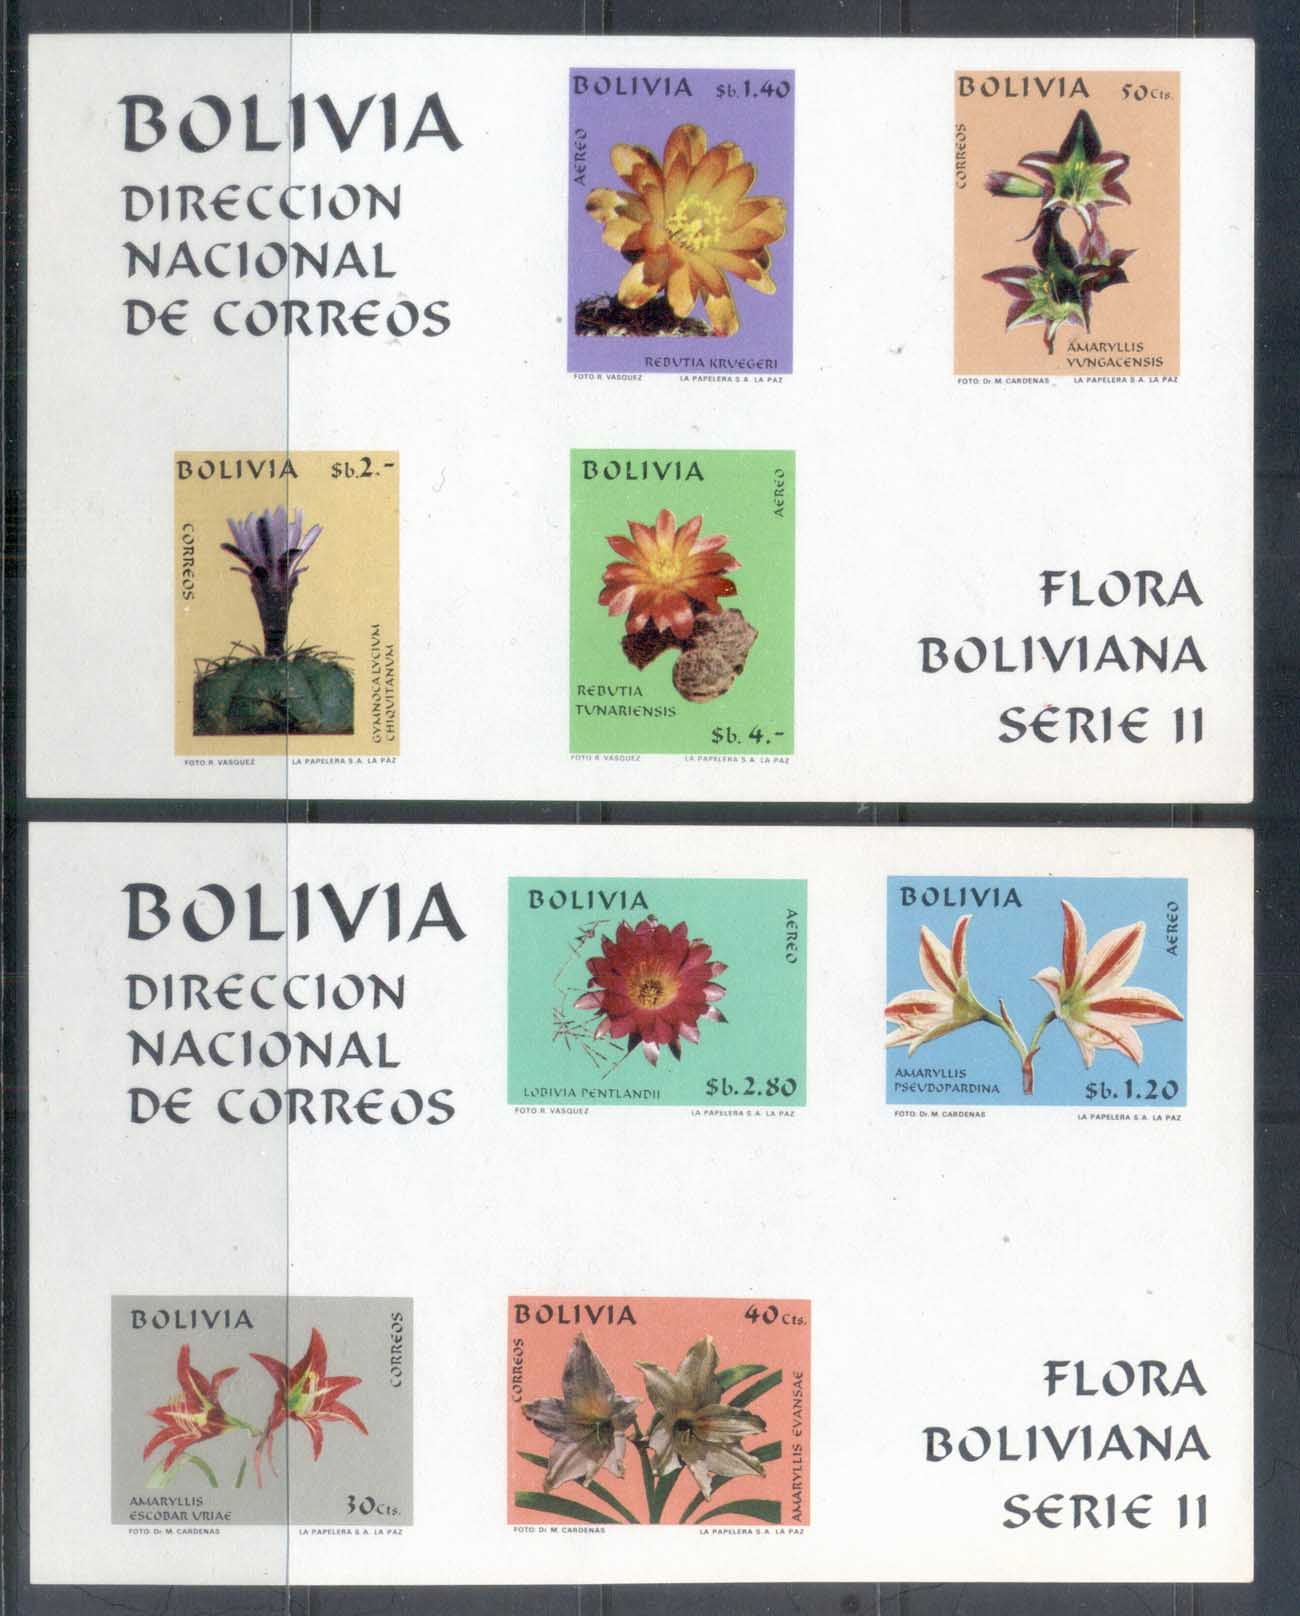 Bolivia 1971 Bolivian Flora Series II IMPERF 2xMS MUH